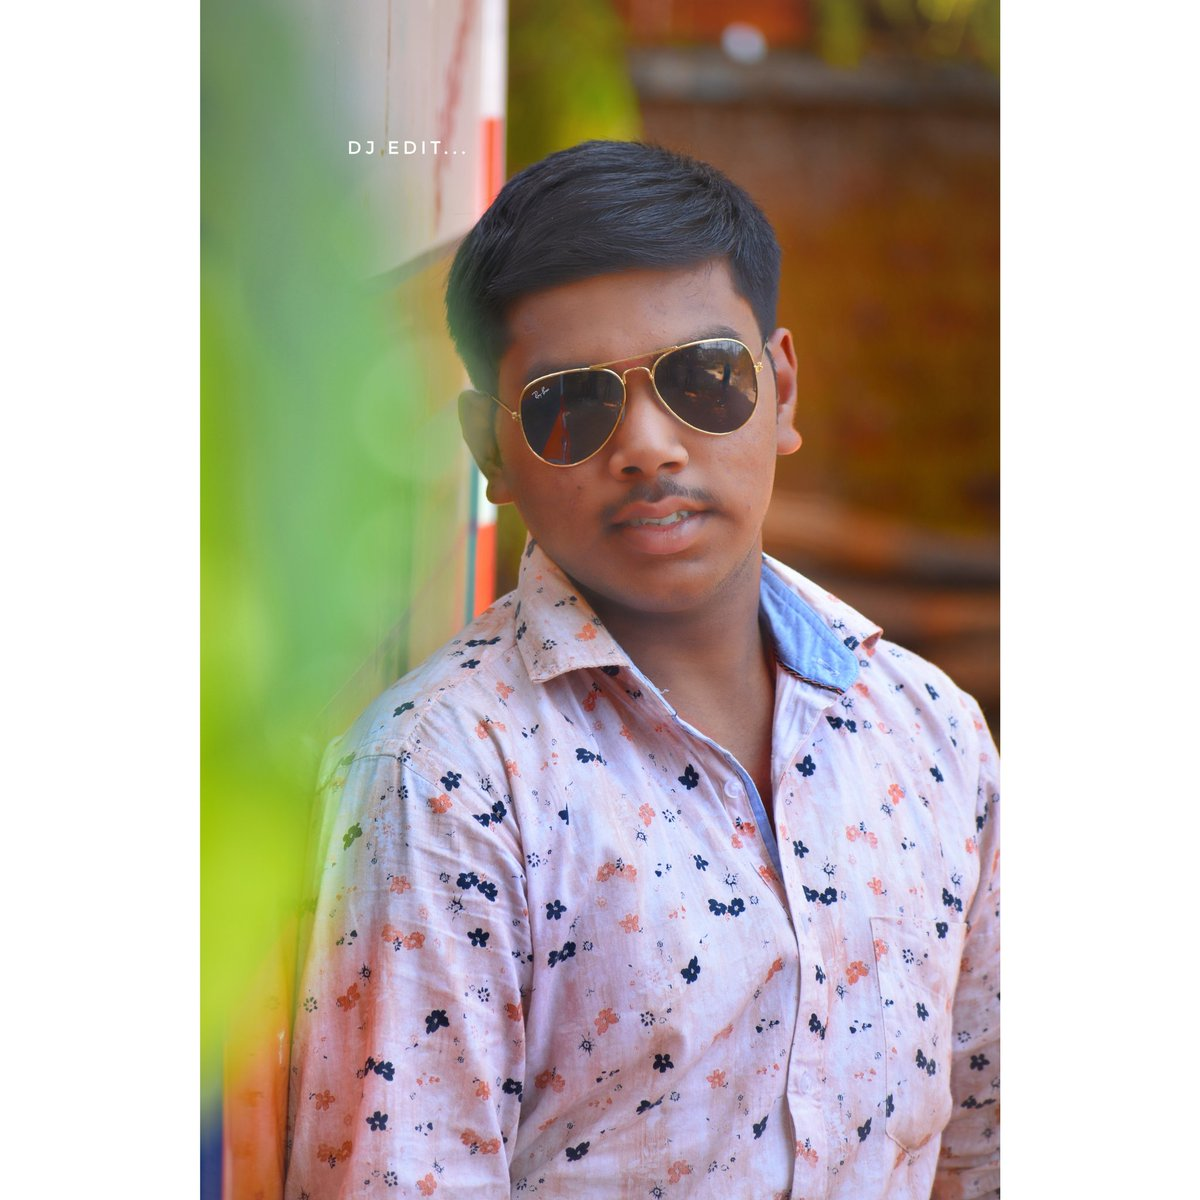 Digvijay jangam #photo #photos #pic #pics #picture #pictures #snapshot_newworldsinglealbum #art #beautiful #instagood #picoftheday #PhotoOfTheDay #color #all_shots #exposure #composition #focus #capture #moment